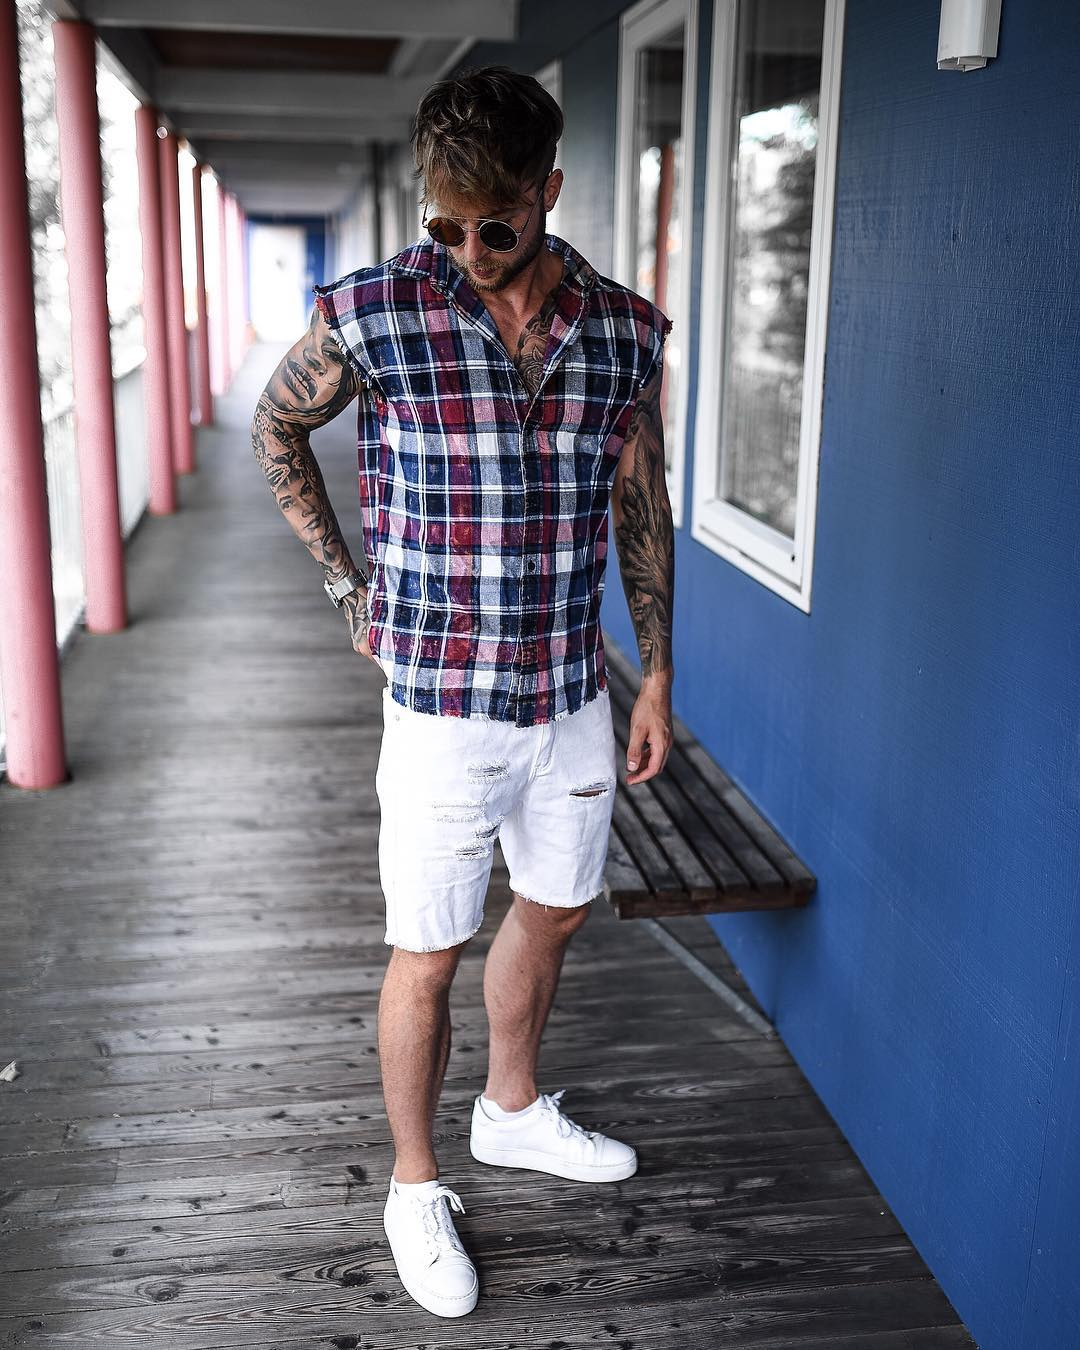 Blue Red Plaid shirt and white shorts ,sunglasses